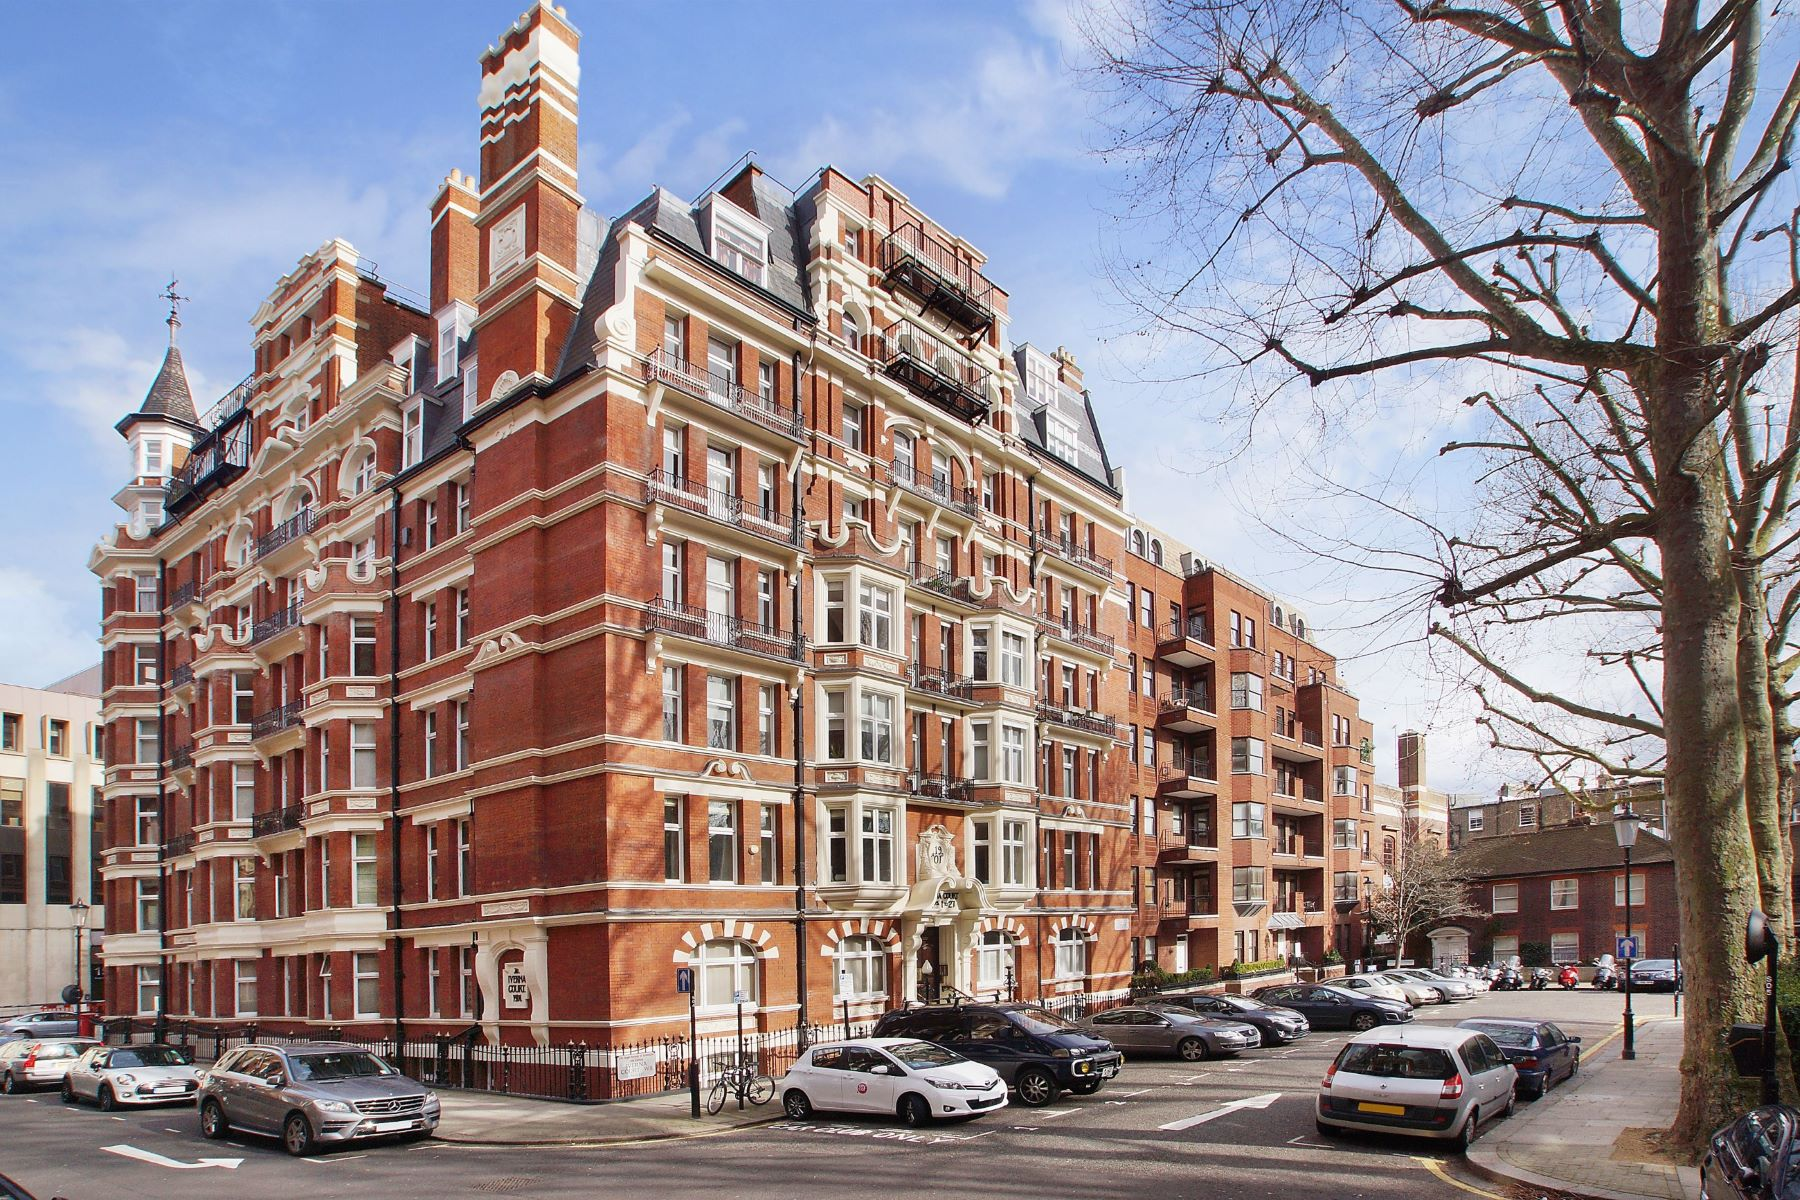 Appartement pour l Vente à Iverna Court, Kensington London, Angleterre, Royaume-Uni